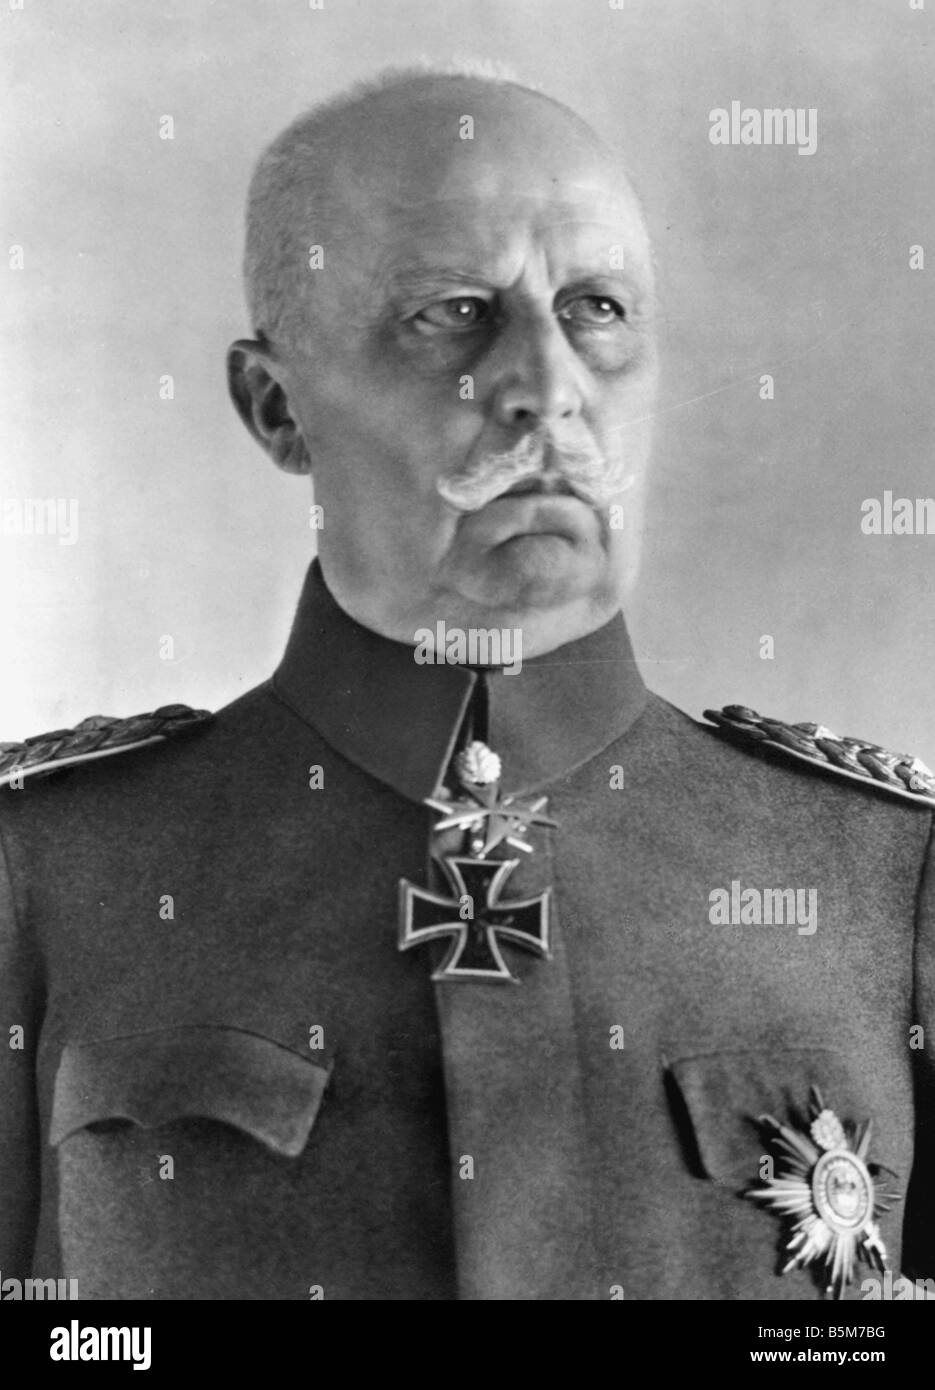 1 L67 B1930 1 Erich Ludendorff Photo c 1930 Ludendorff Erich Prussian General as of 1916 1st Quartermaster General - Stock Image